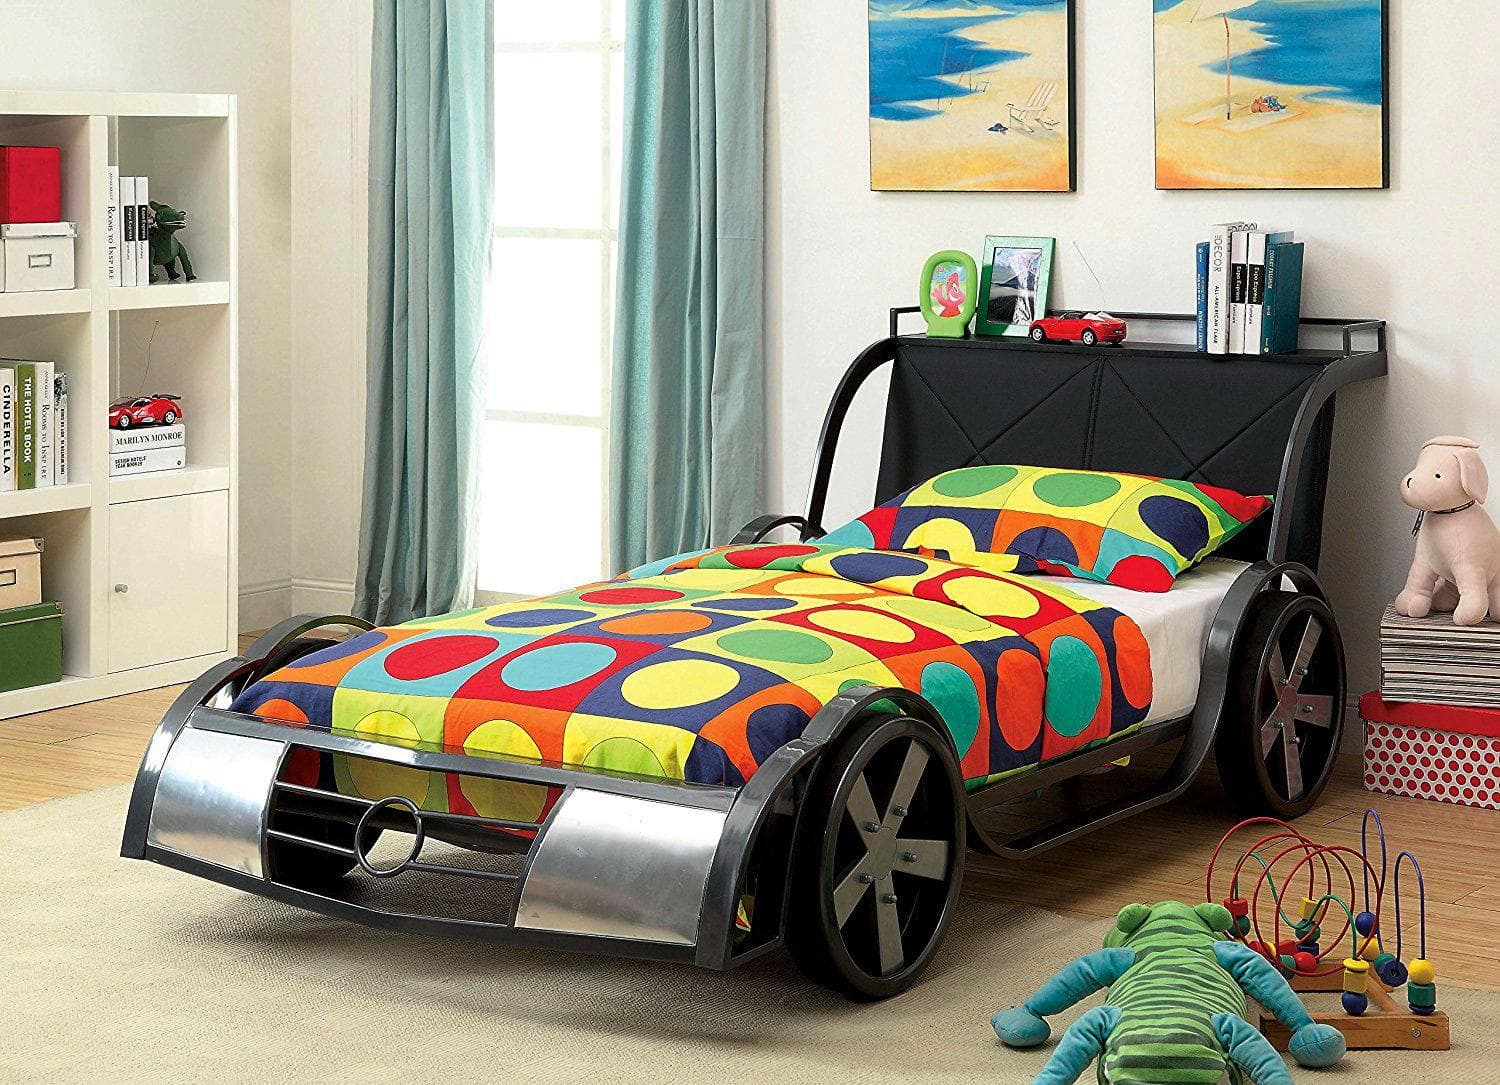 Car Beds for Children's Rooms: Bright Element of Interior Design. Multicolored coverlet